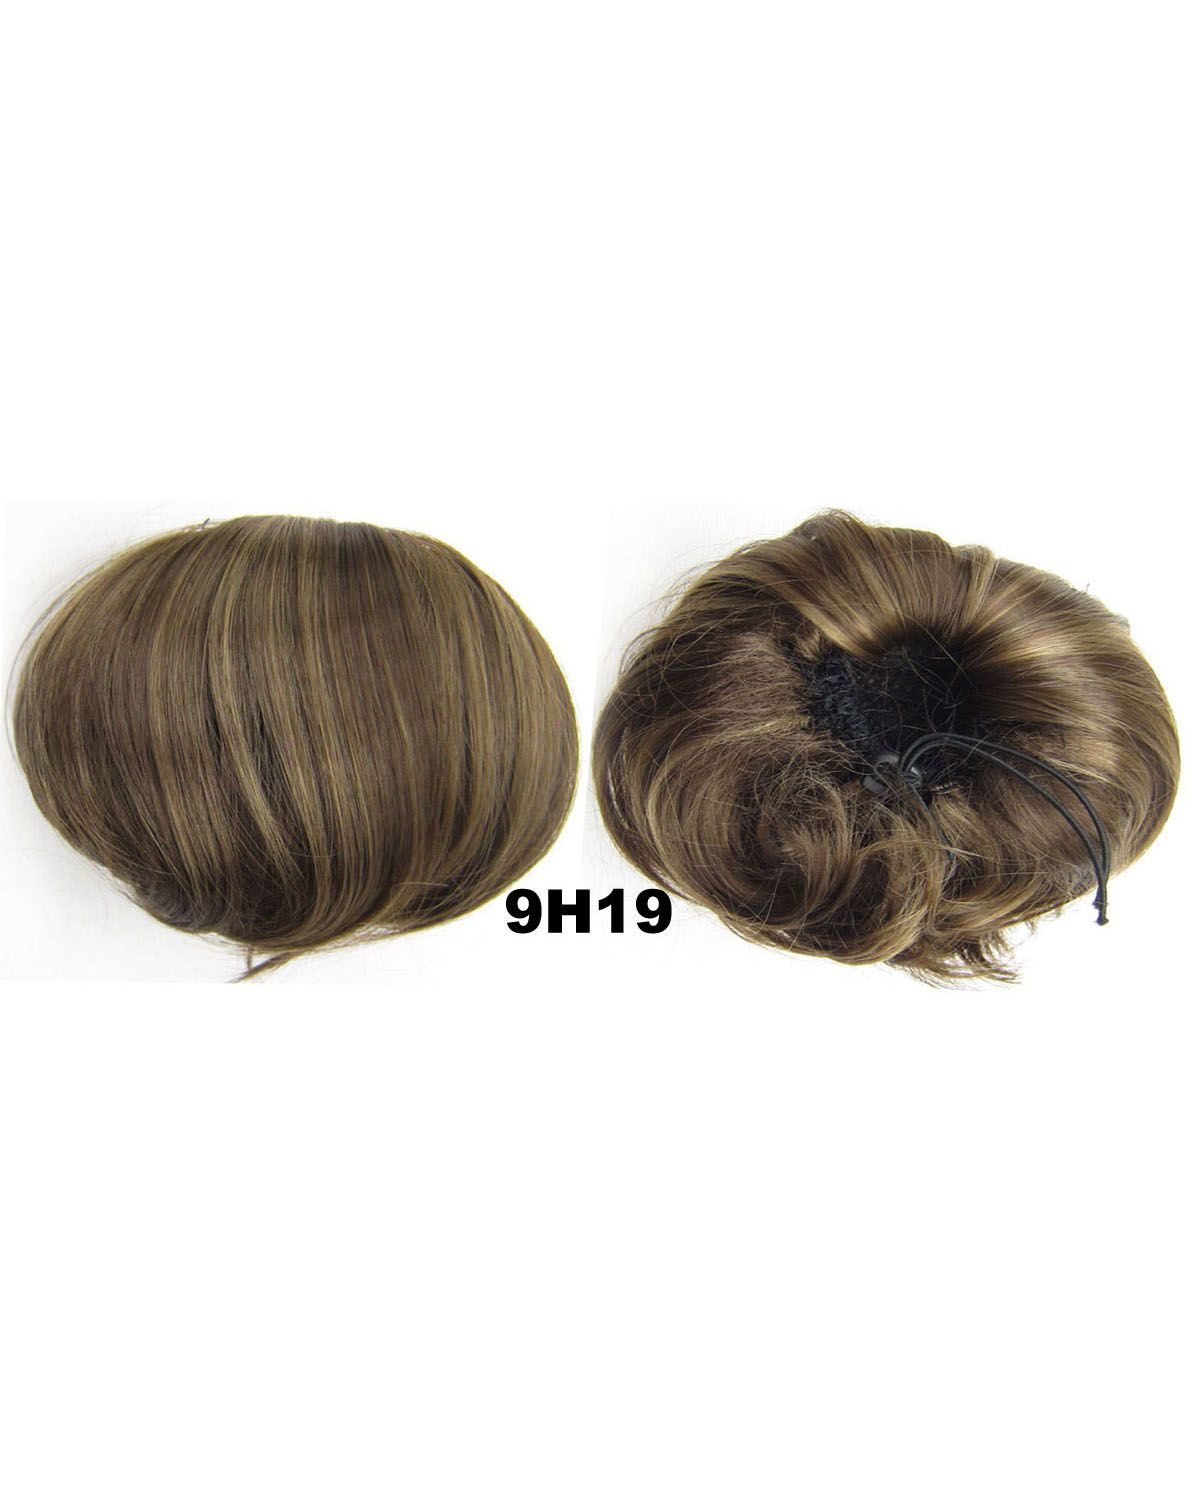 Ladies Charismatic Straight Short Hair Buns Drawstring Synthetic Hair Extension Bride Scrunchies 9H19